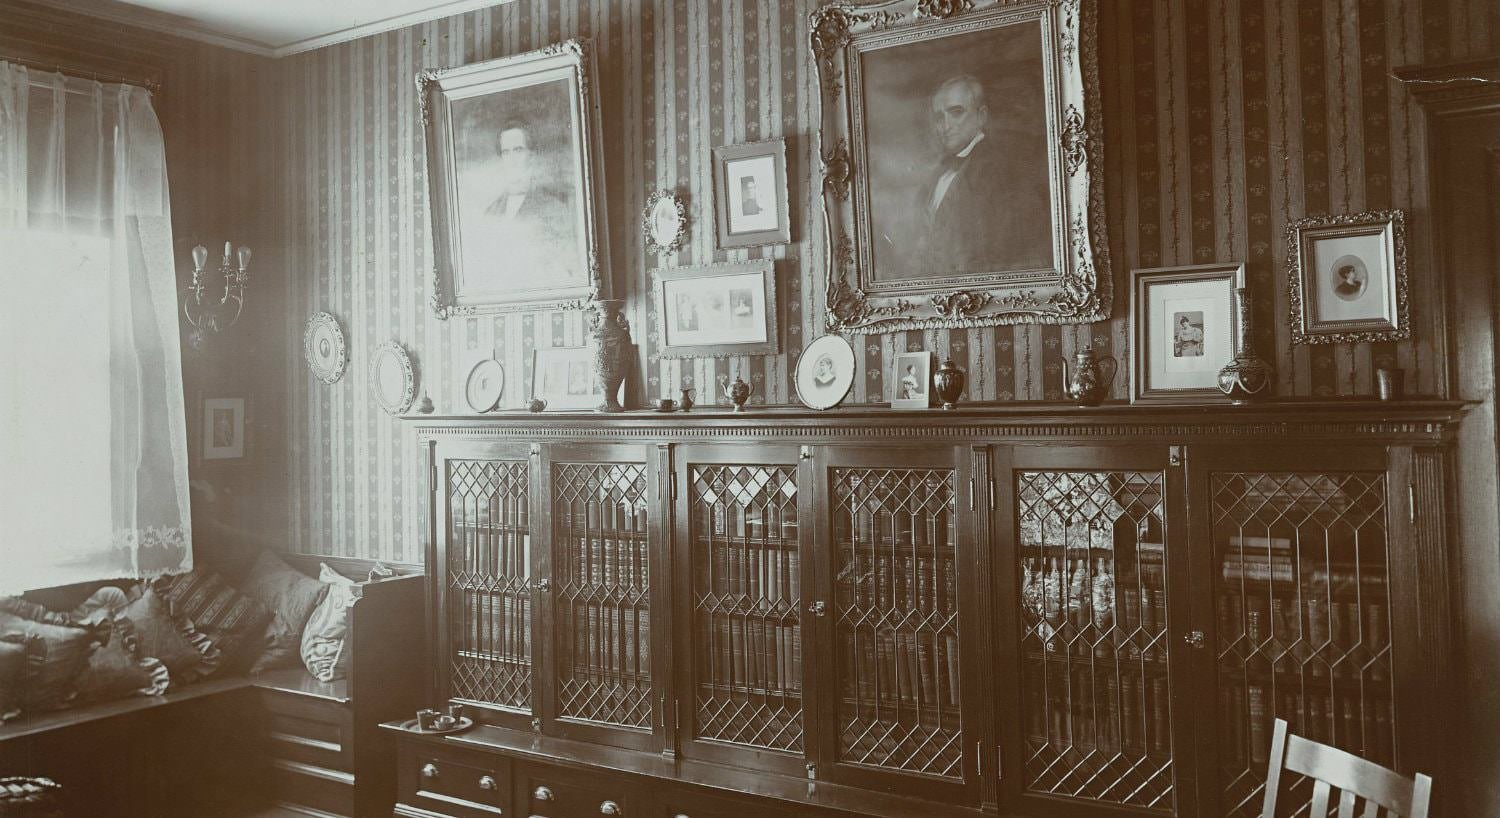 Old black and white photo of library bookcases with glass doors and elaborately framed portraits